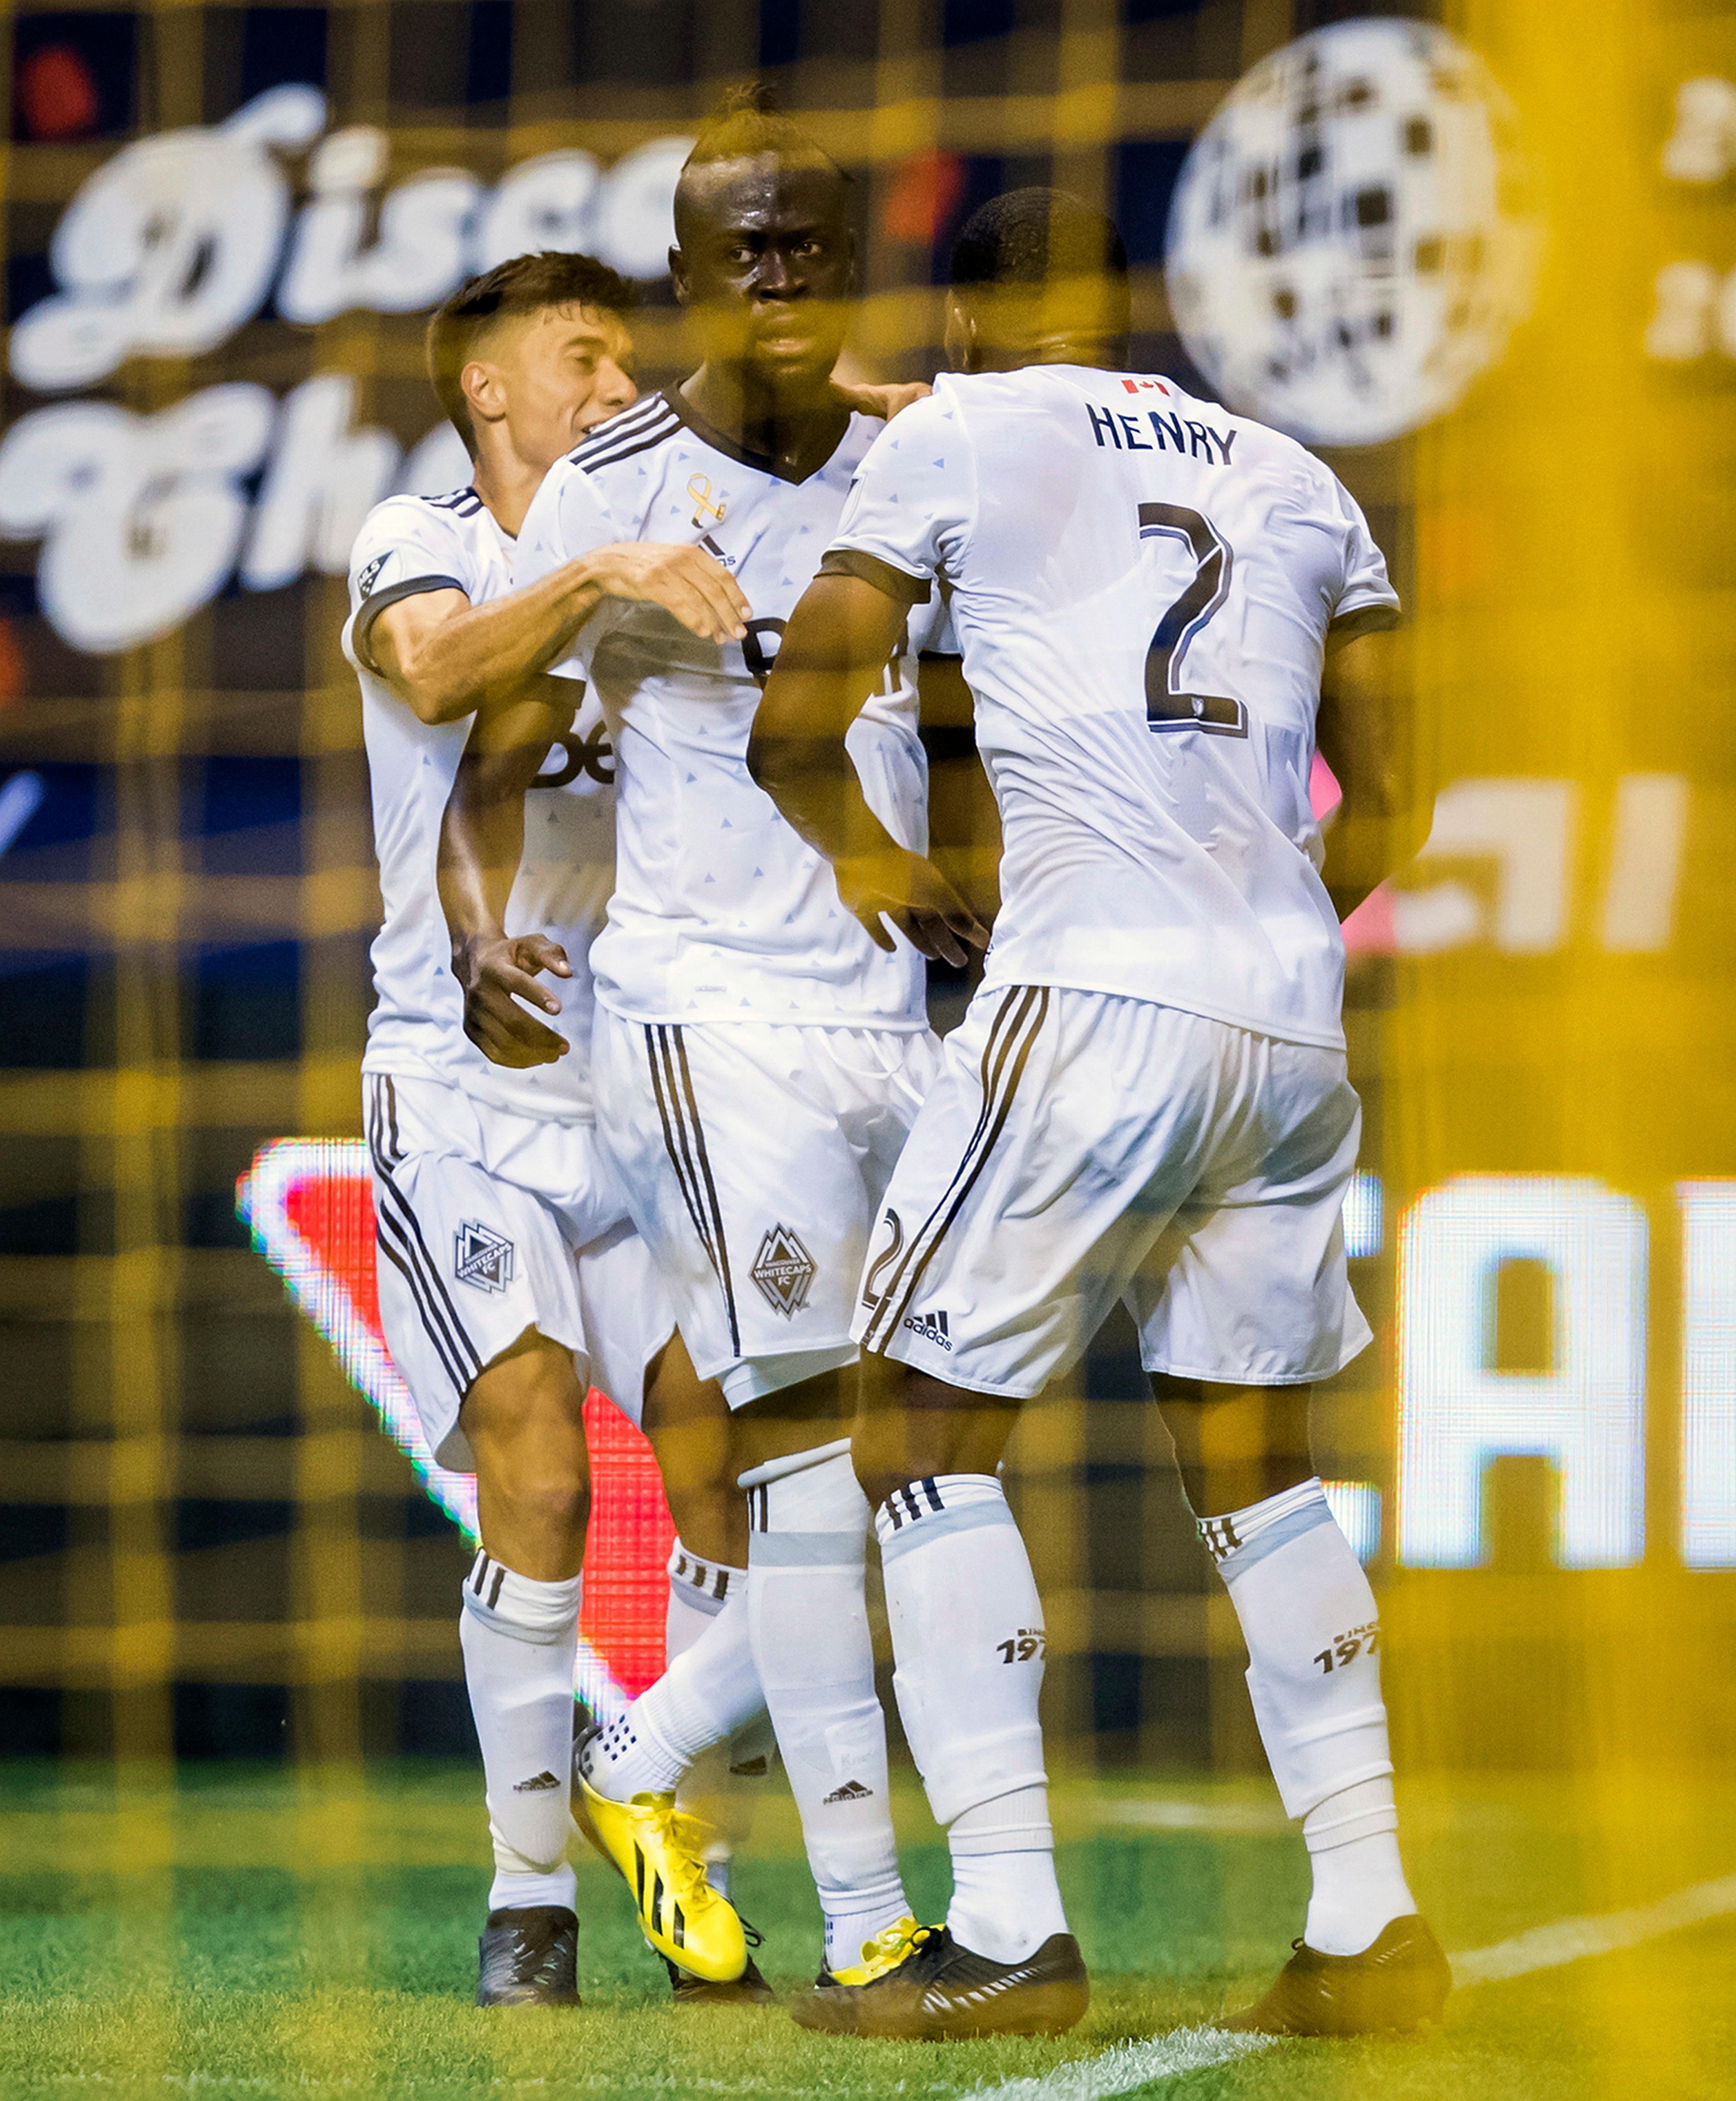 Vancouver Whitecaps' Nicolas Mezquida, from left to right, Kei Kamara and Doneil Henry celebrate Kamara's goal against the Seattle Sounders during the first half of an MLS soccer match, Saturday, Sept. 15, 2018, in Vancouver, British Columbia. (Darryl Dyck/The Canadian Press via AP)